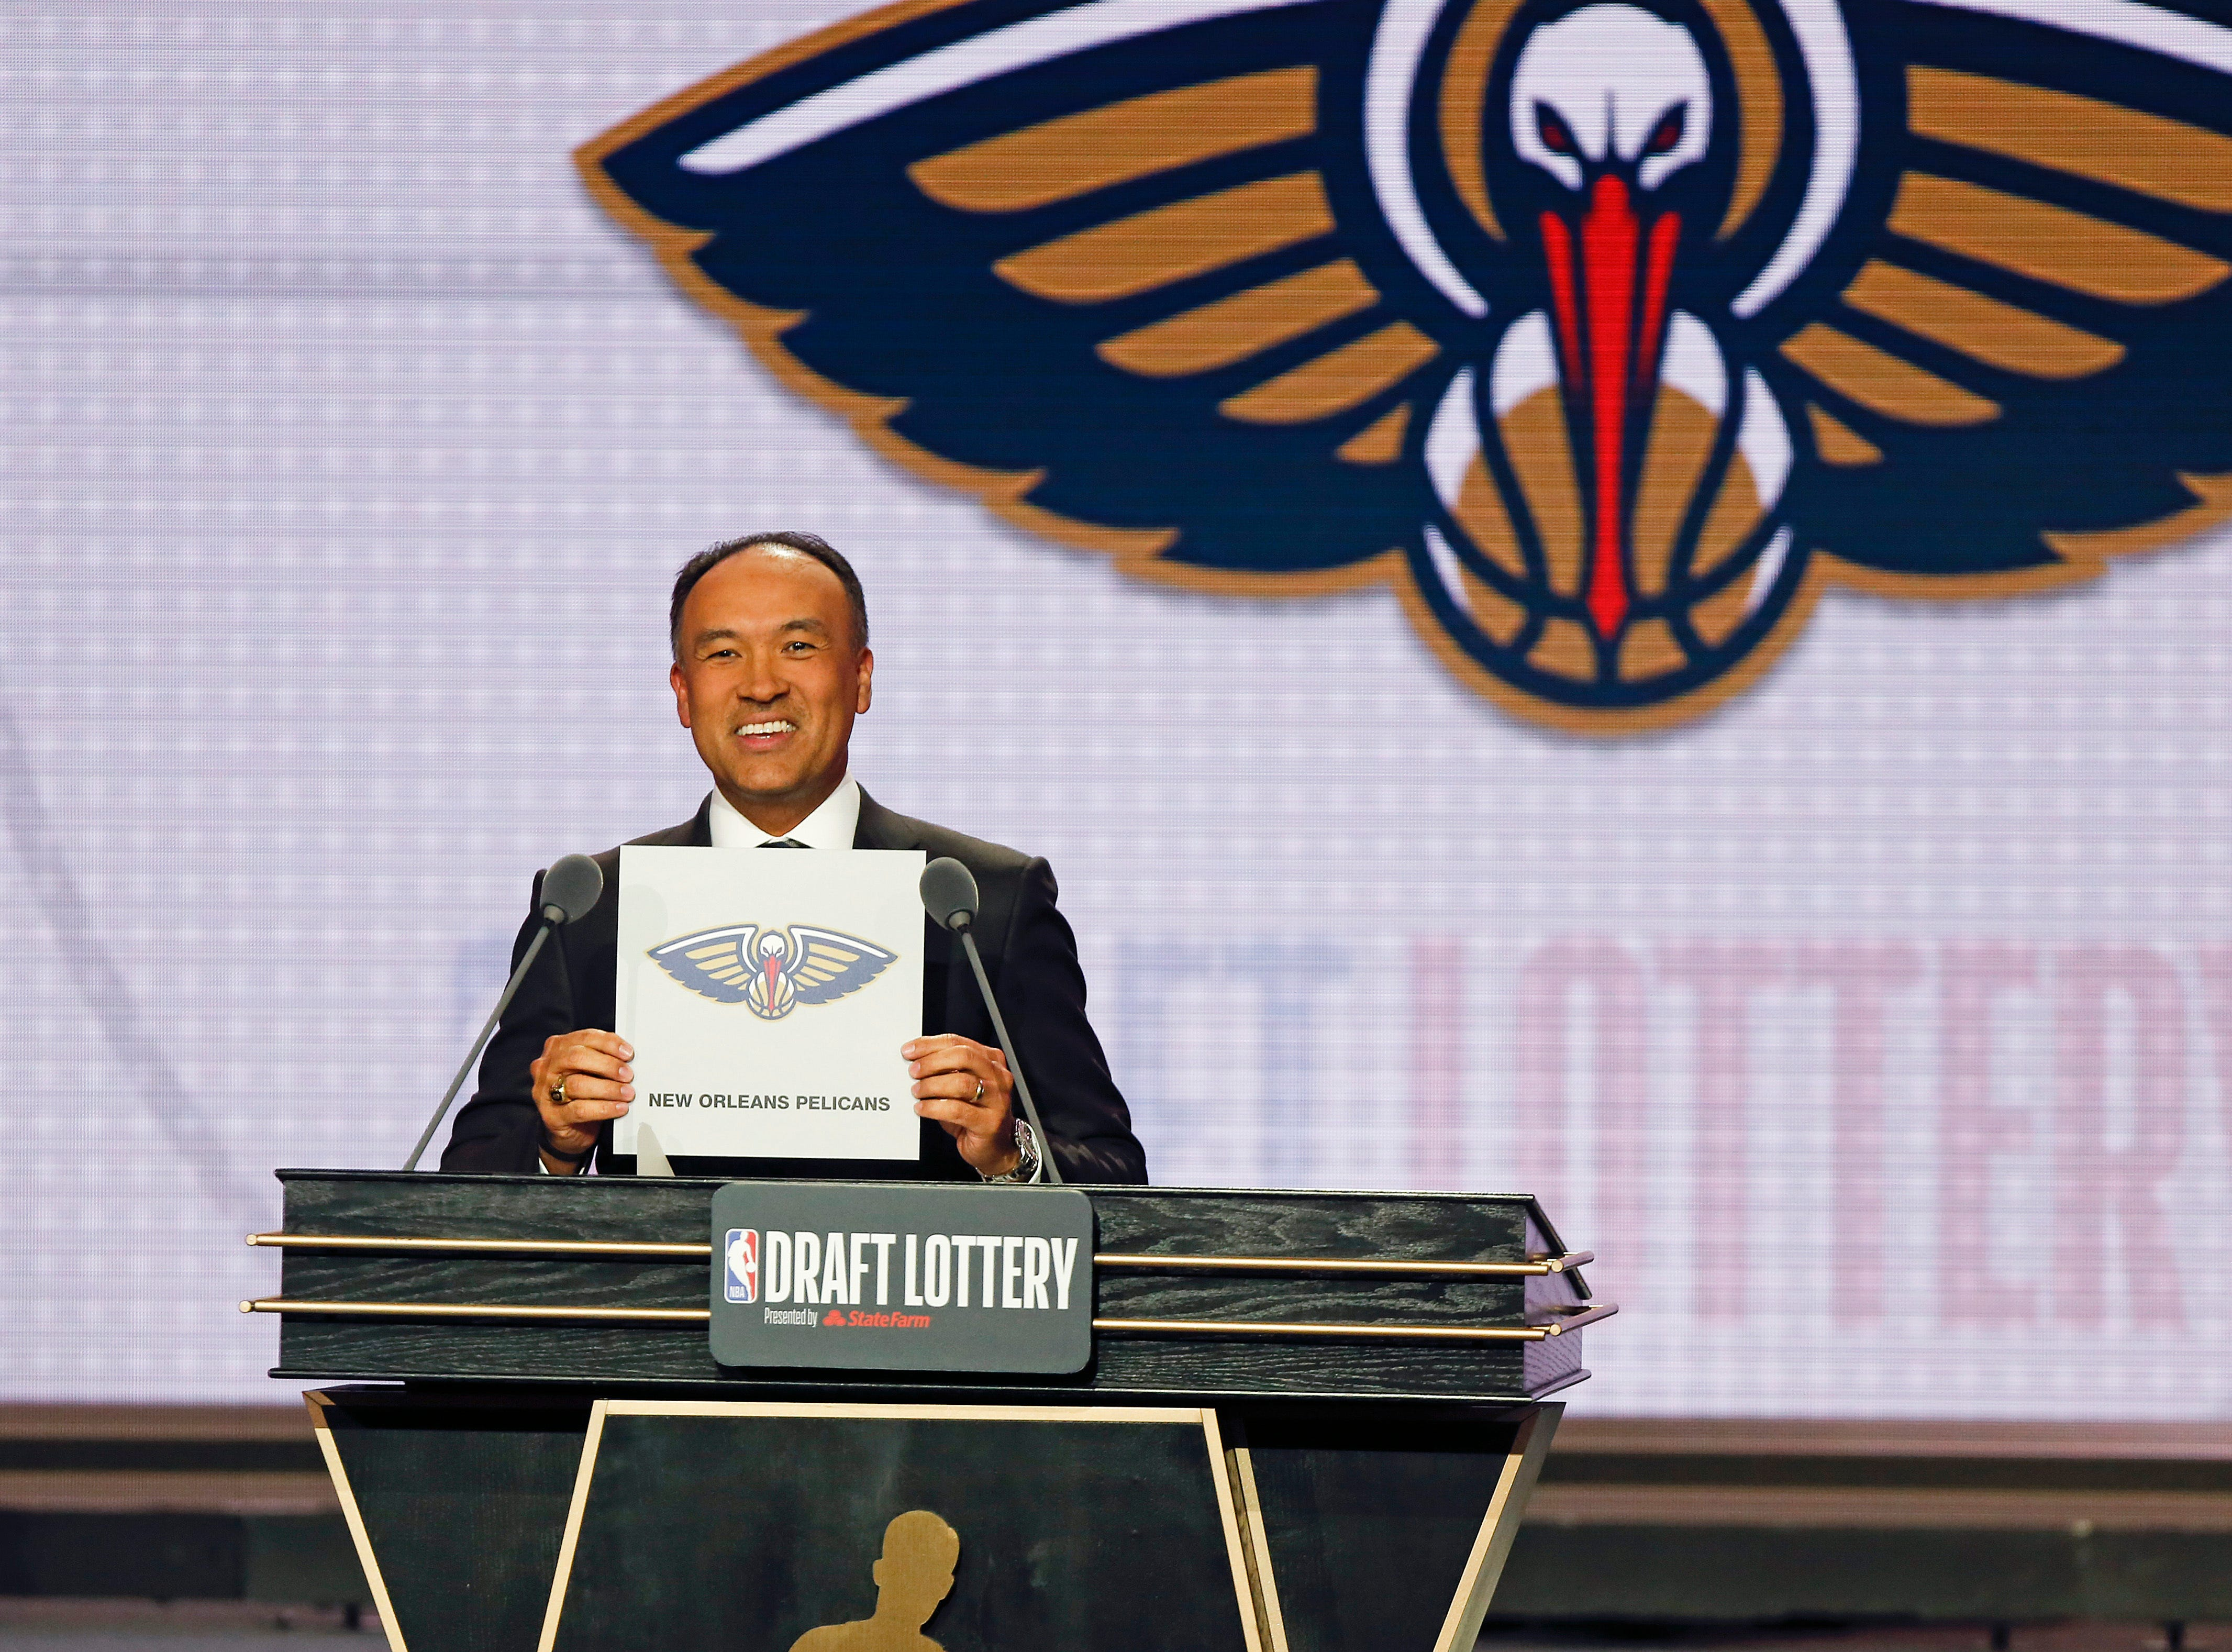 NBA Deputy Commissioner Mark Tatum announces that the New Orleans Pelicans had won the first pick during the NBA basketball draft lottery Tuesday, May 14, 2019, in Chicago. (AP Photo/Nuccio DiNuzzo)